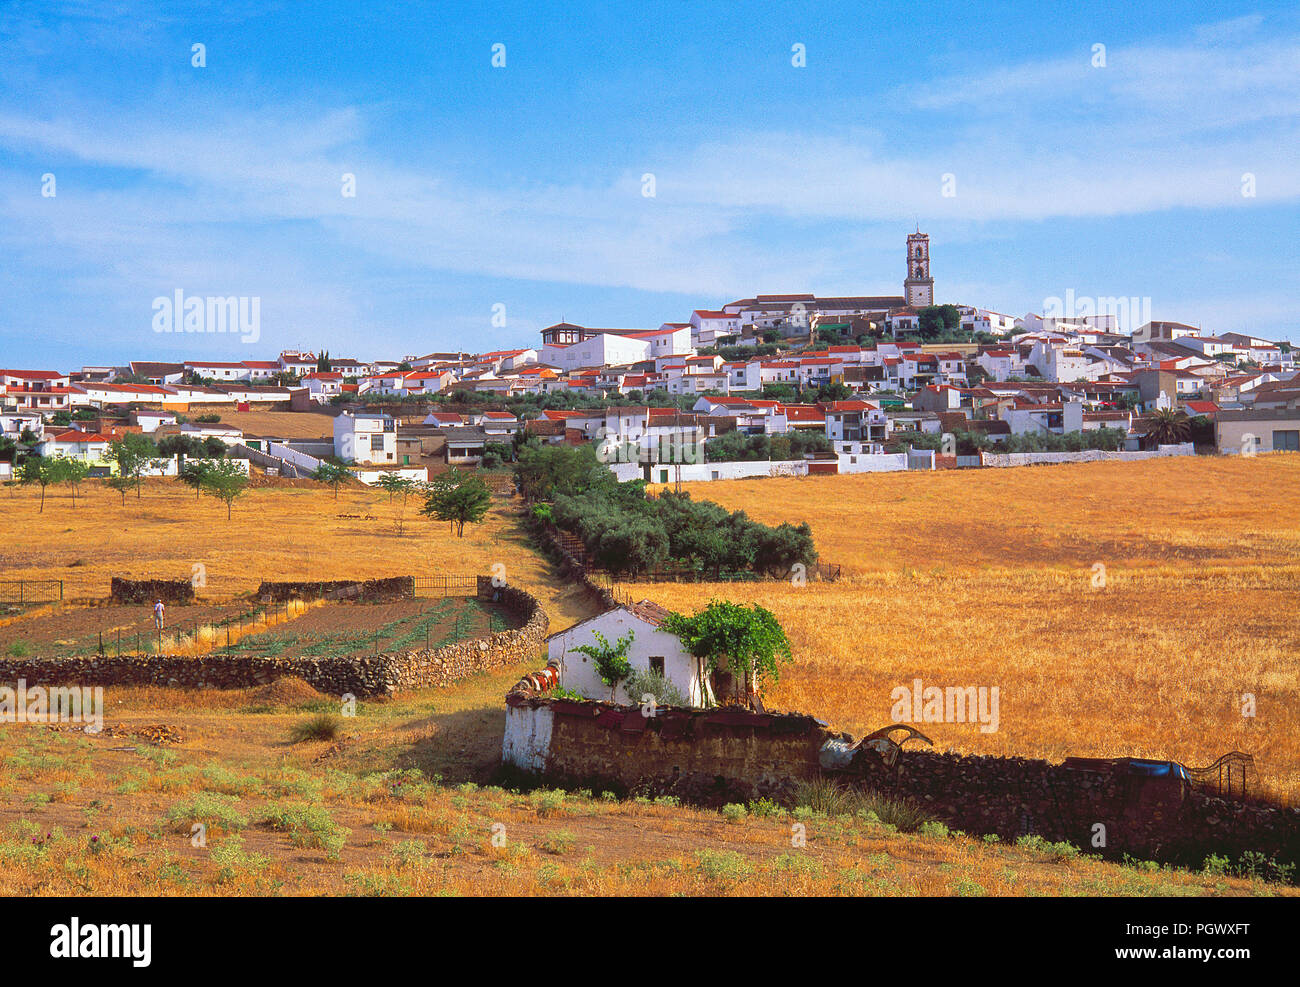 Overview. Fuenteobejuna, Cordoba province, Andalucia, Spain. - Stock Image